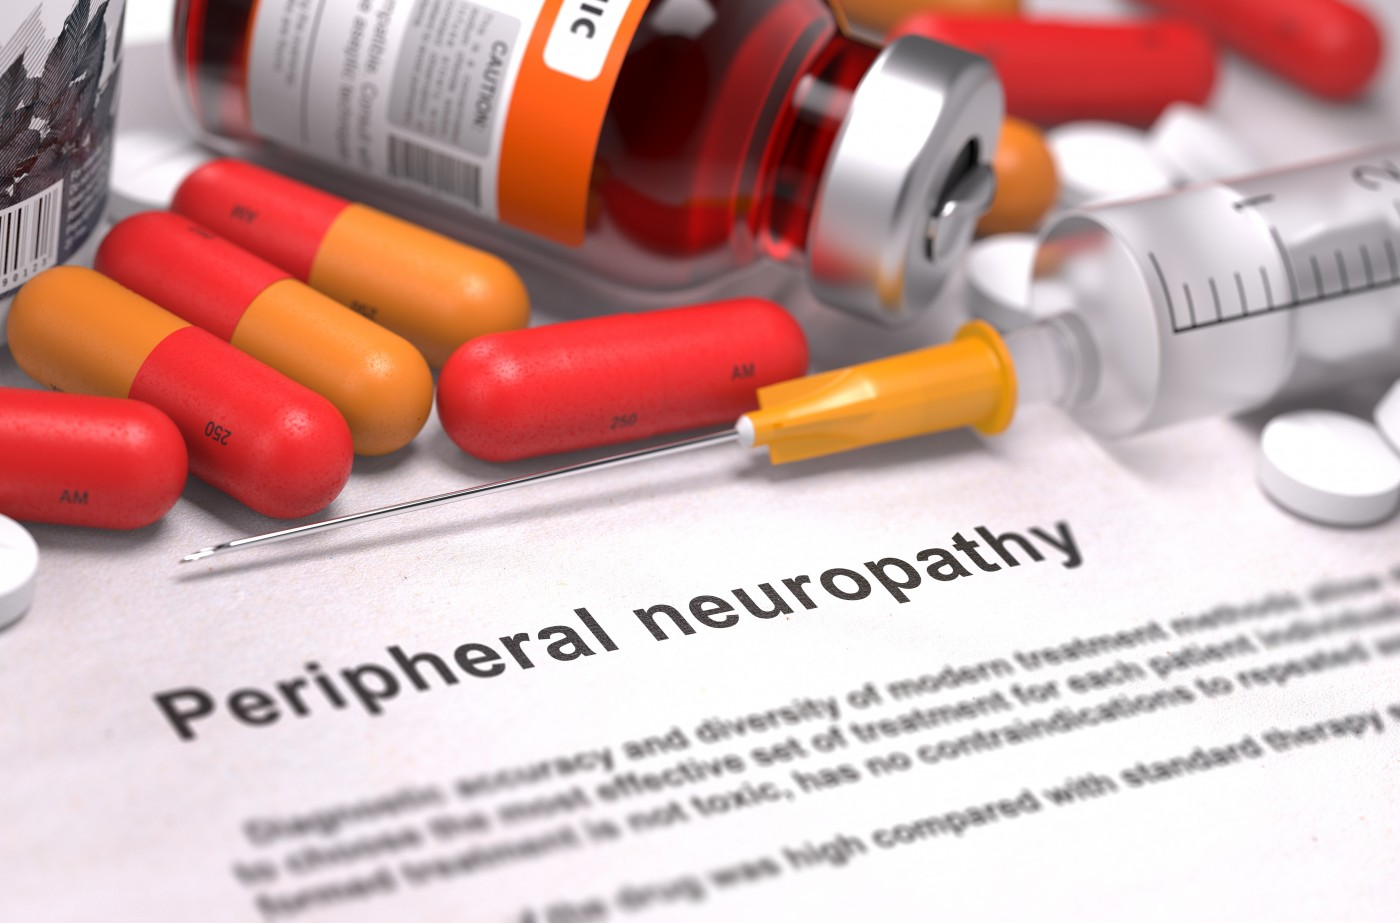 Study Reports Peripheral Neuropathy is Associated with Mitochondrial Dysfunction